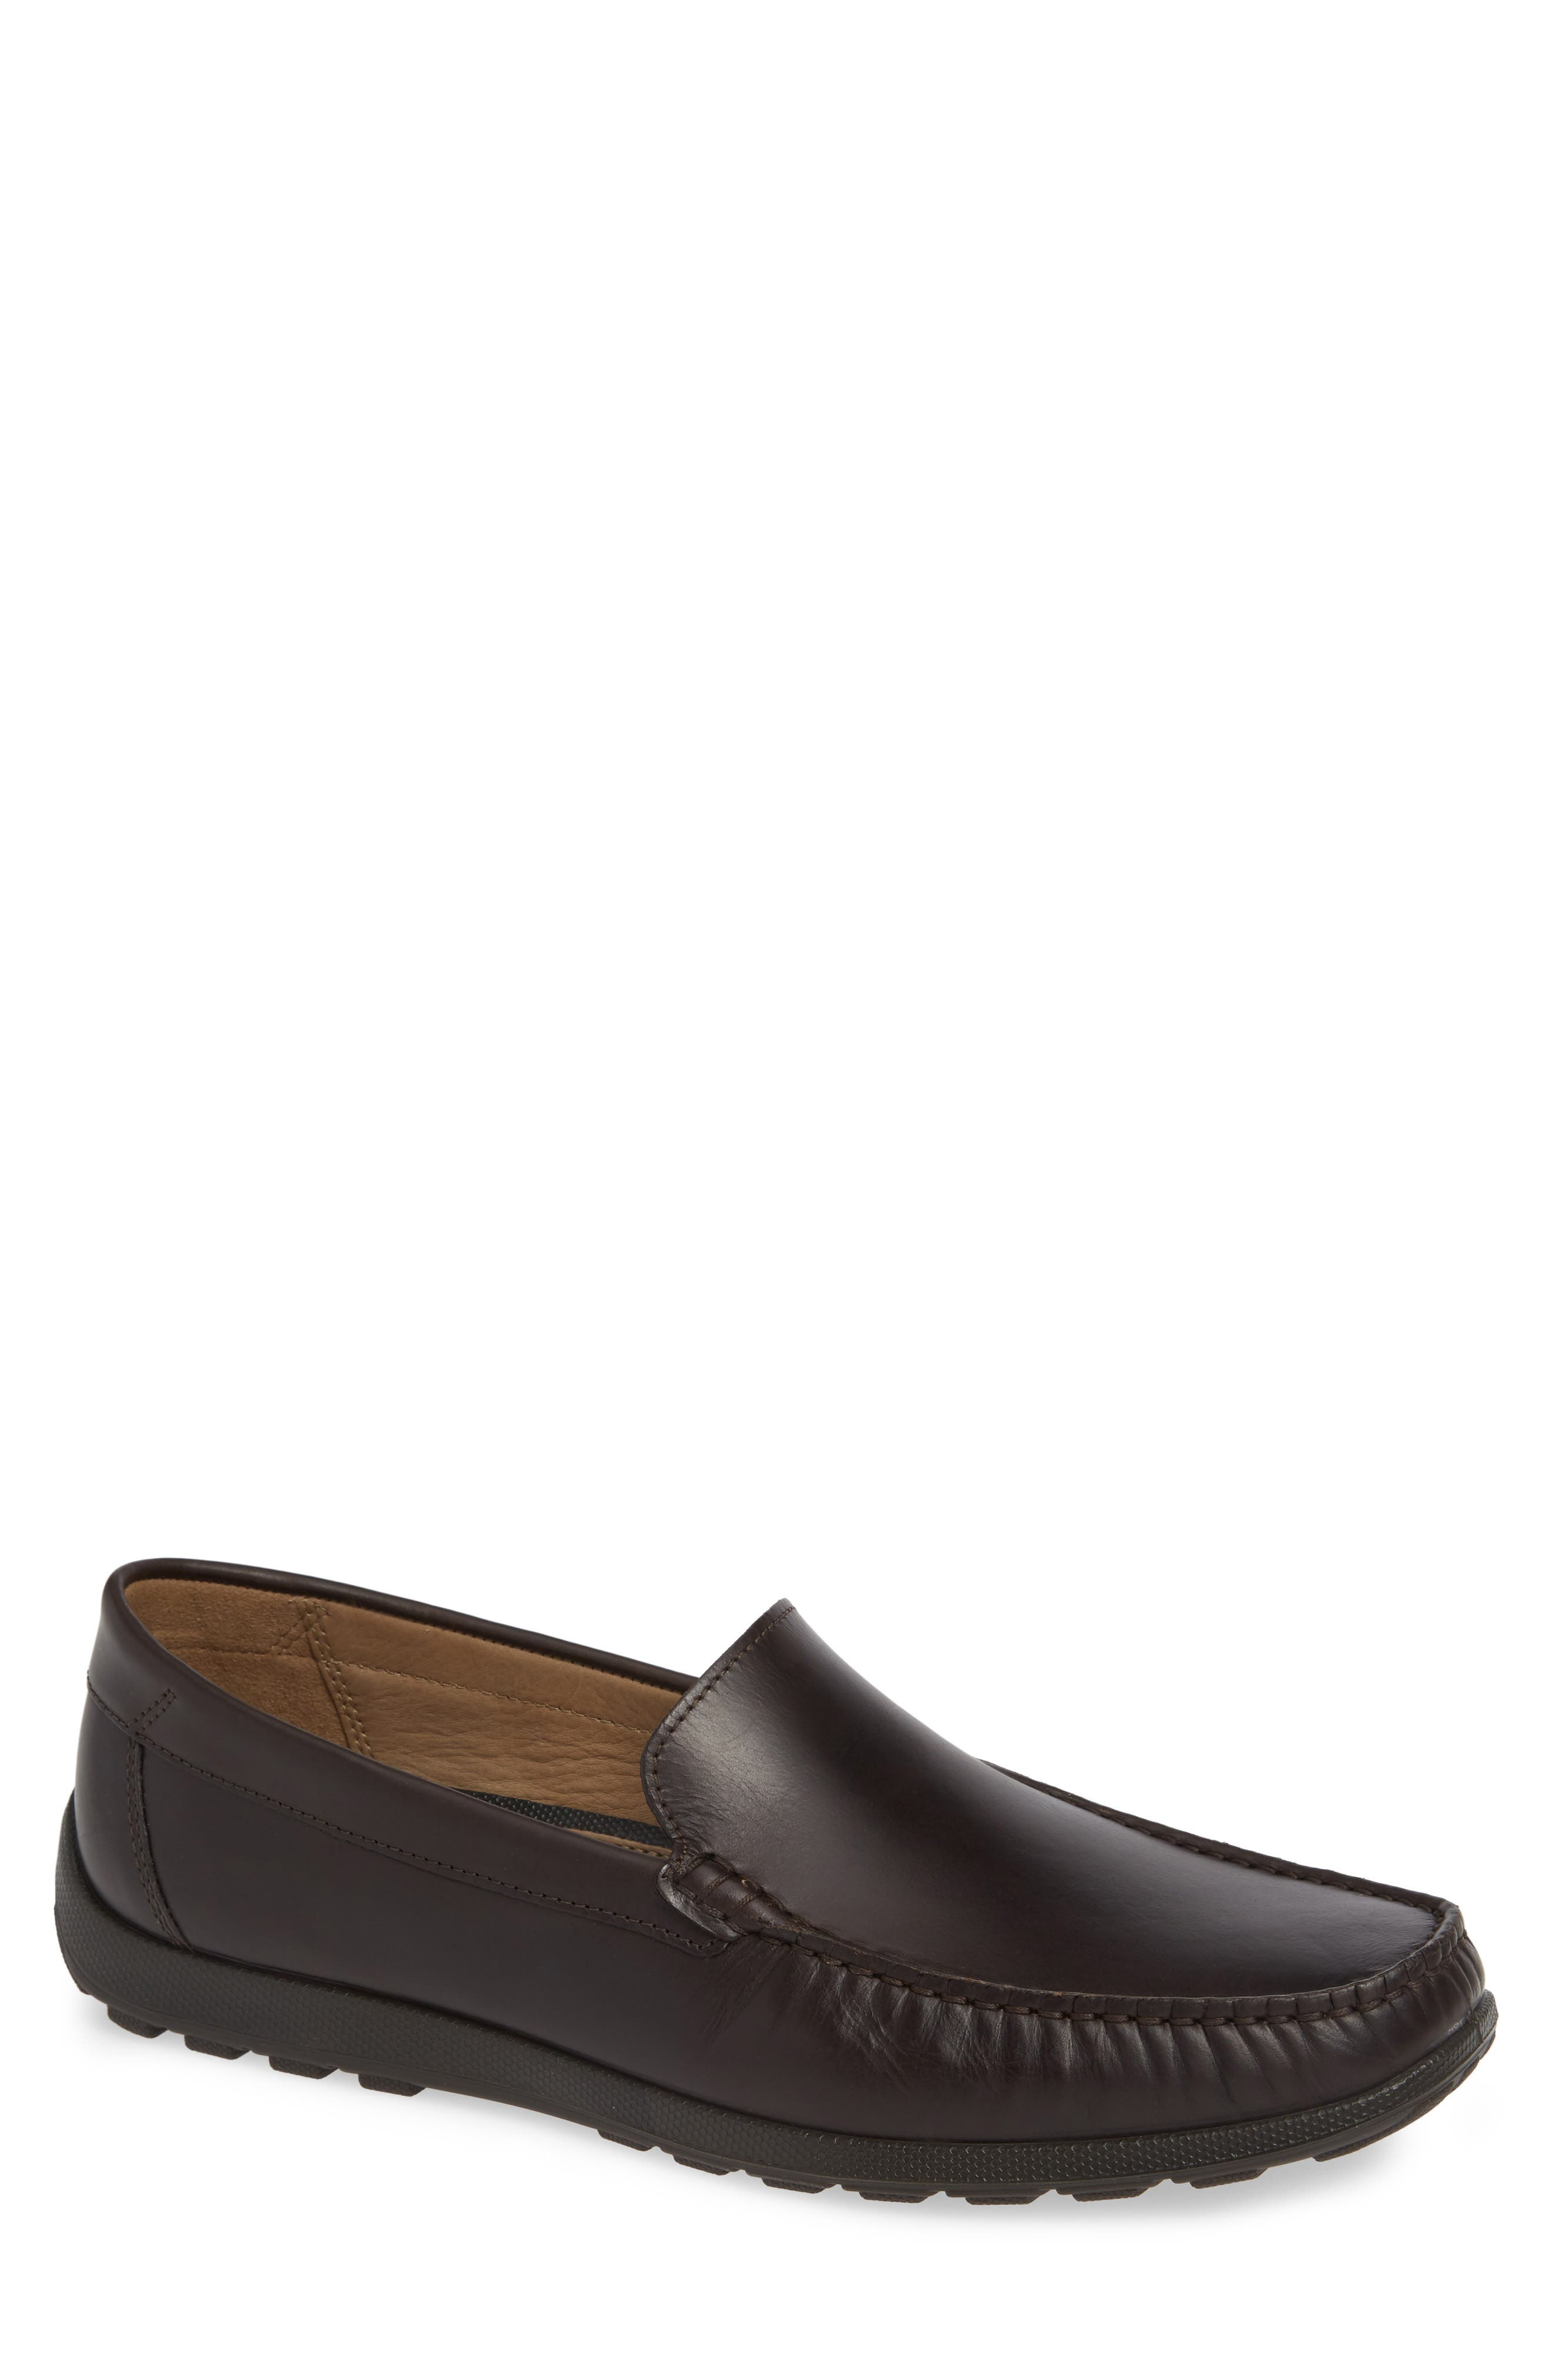 Ecco Dip Moc Toe Driving Loafer,9.5 - Brown